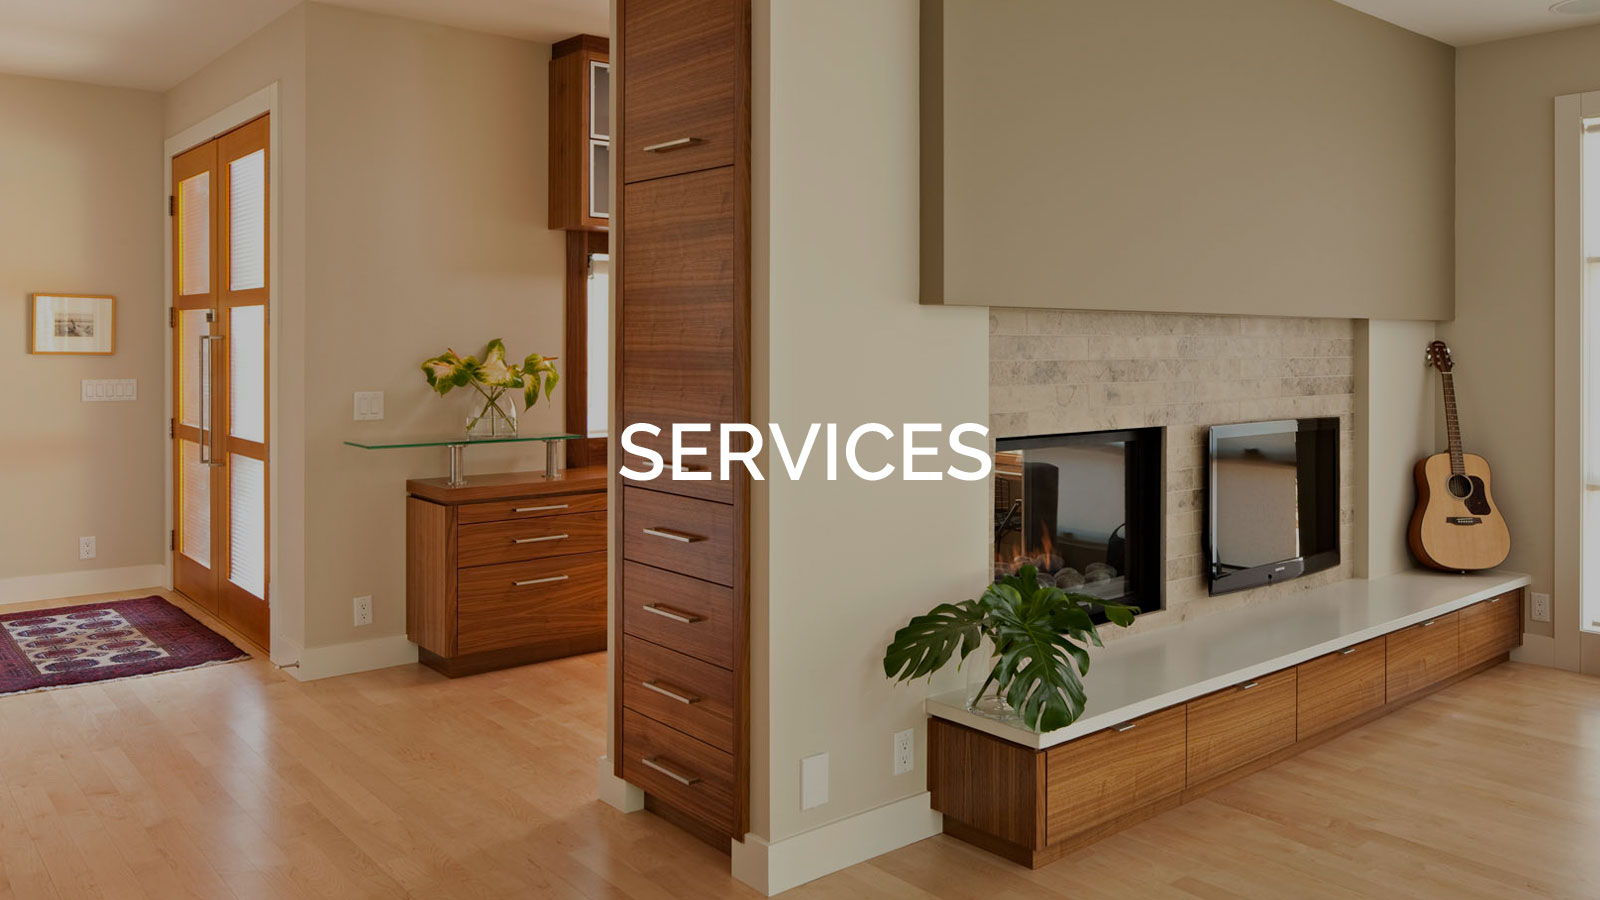 Tracy Topham Interior Design - Services